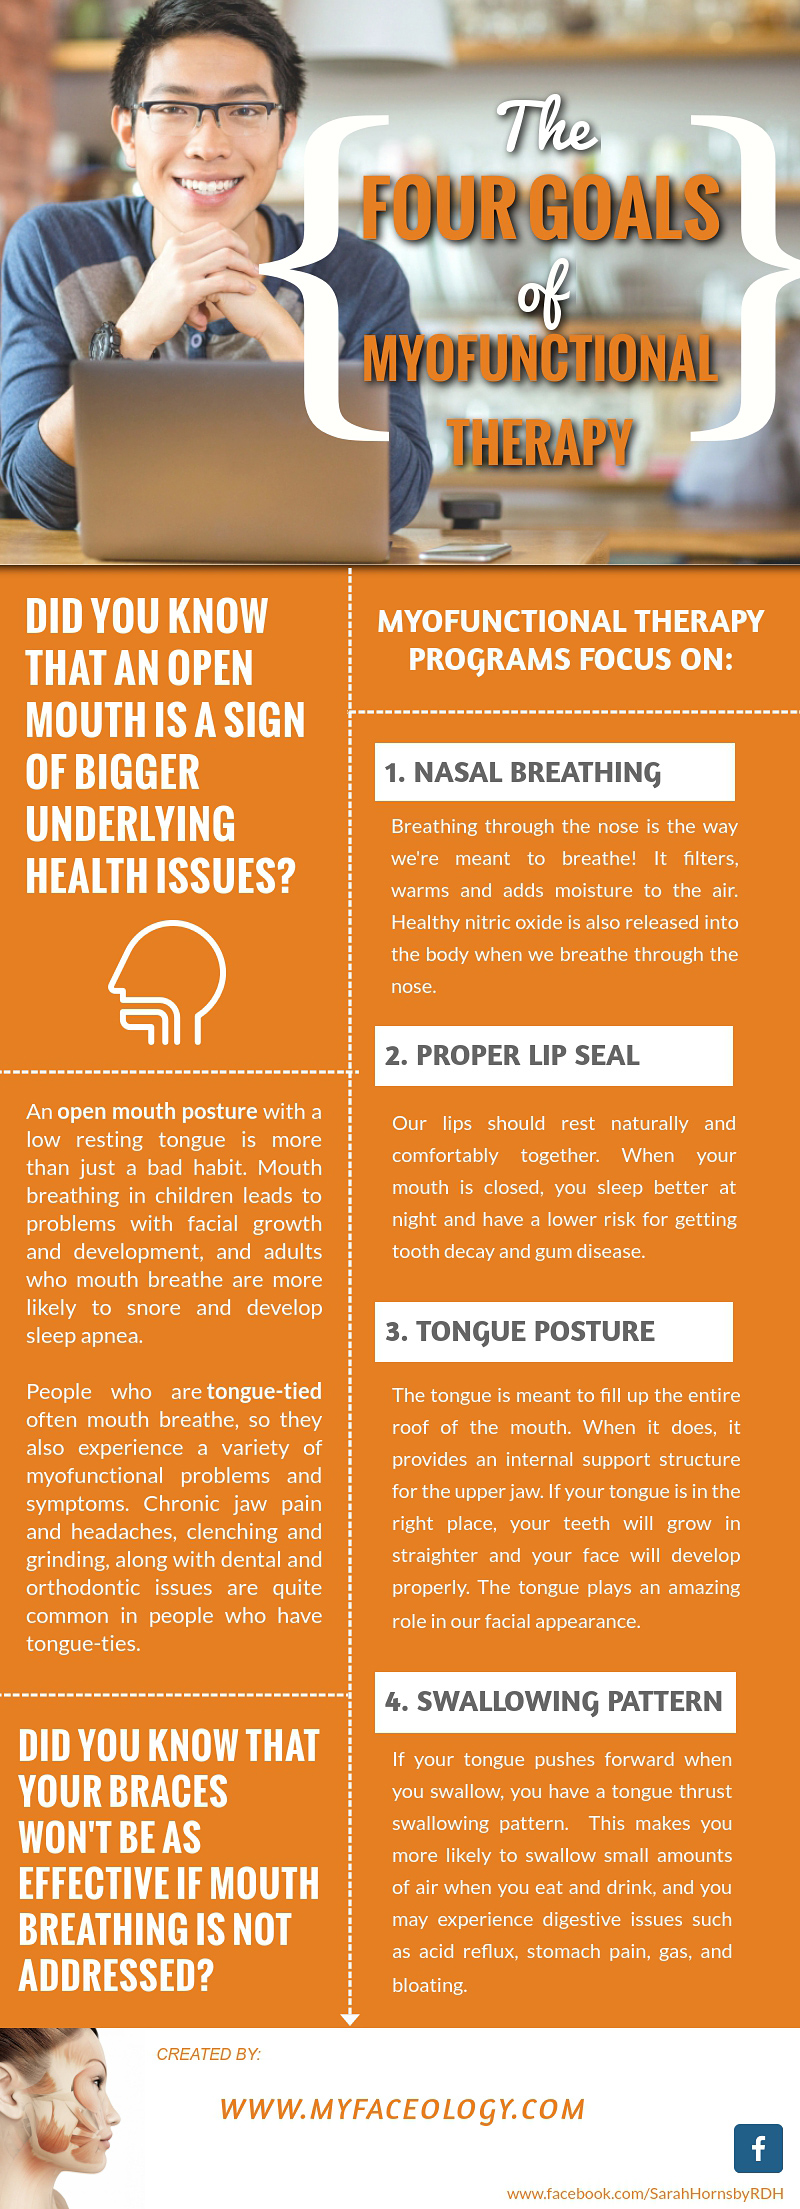 Myofunctional Therapy Infographic - The Four Goals of myofunctional therapy